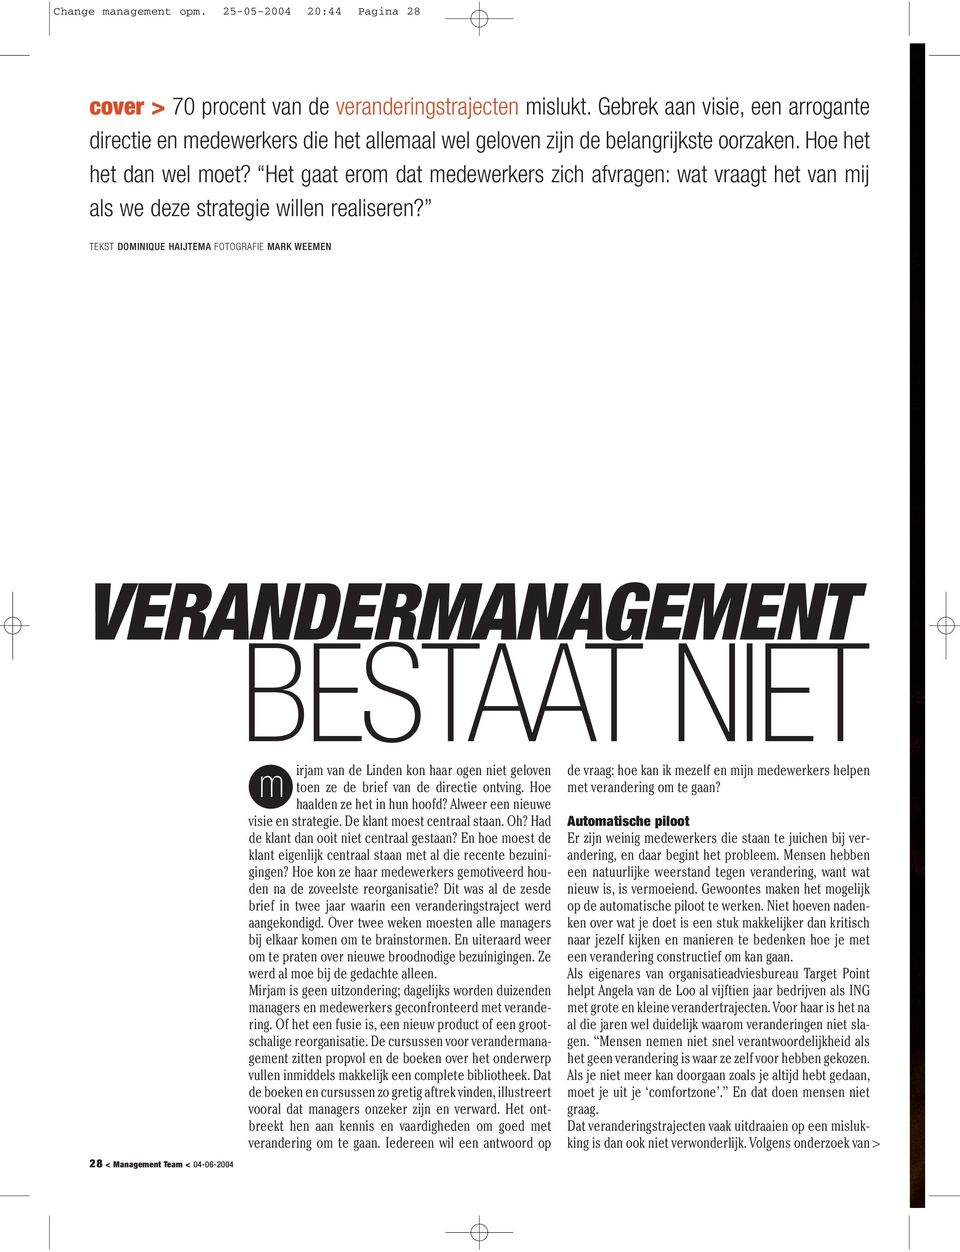 TEKST DOMINIQUE HAIJTEMA FOTOGRAFIE MARK WEEMEN VERANDERMANAGEMENT BESTAAT NIET 28 < Management Team < 04-06-2004 m irjam van de Linden kon haar ogen niet geloven toen ze de brief van de directie